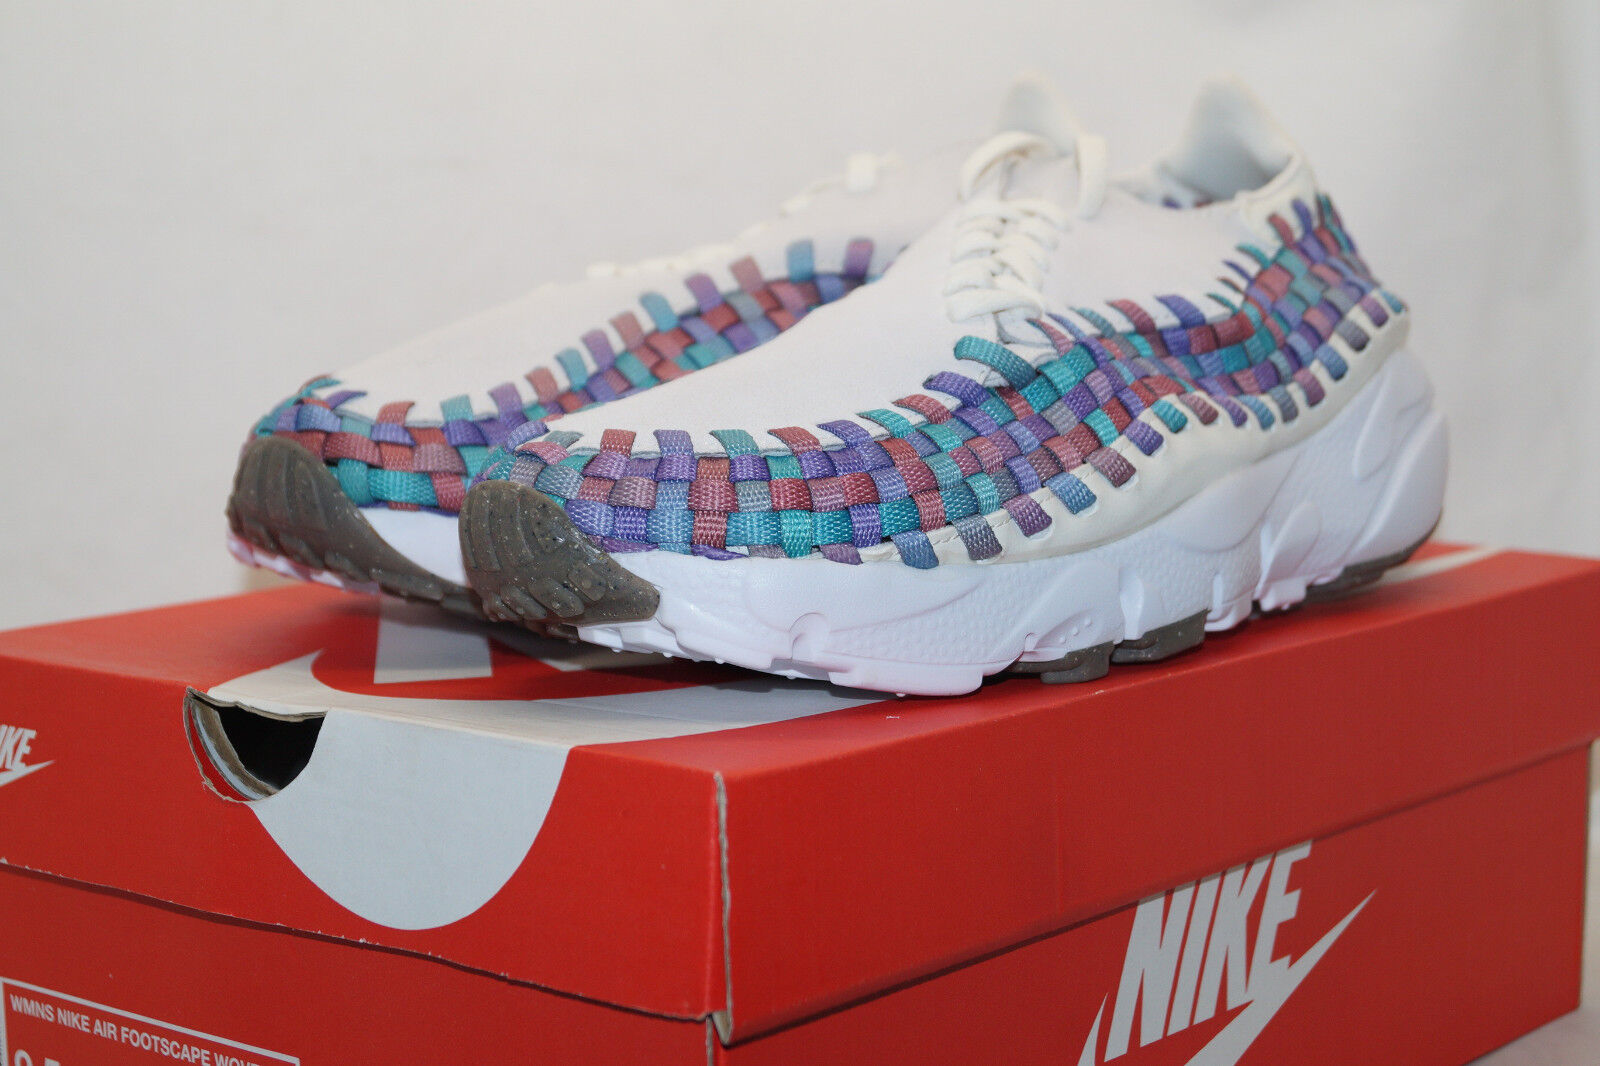 Nike Wmns Air Footscape Woven EU 41 UK 7 Suede 917698 100